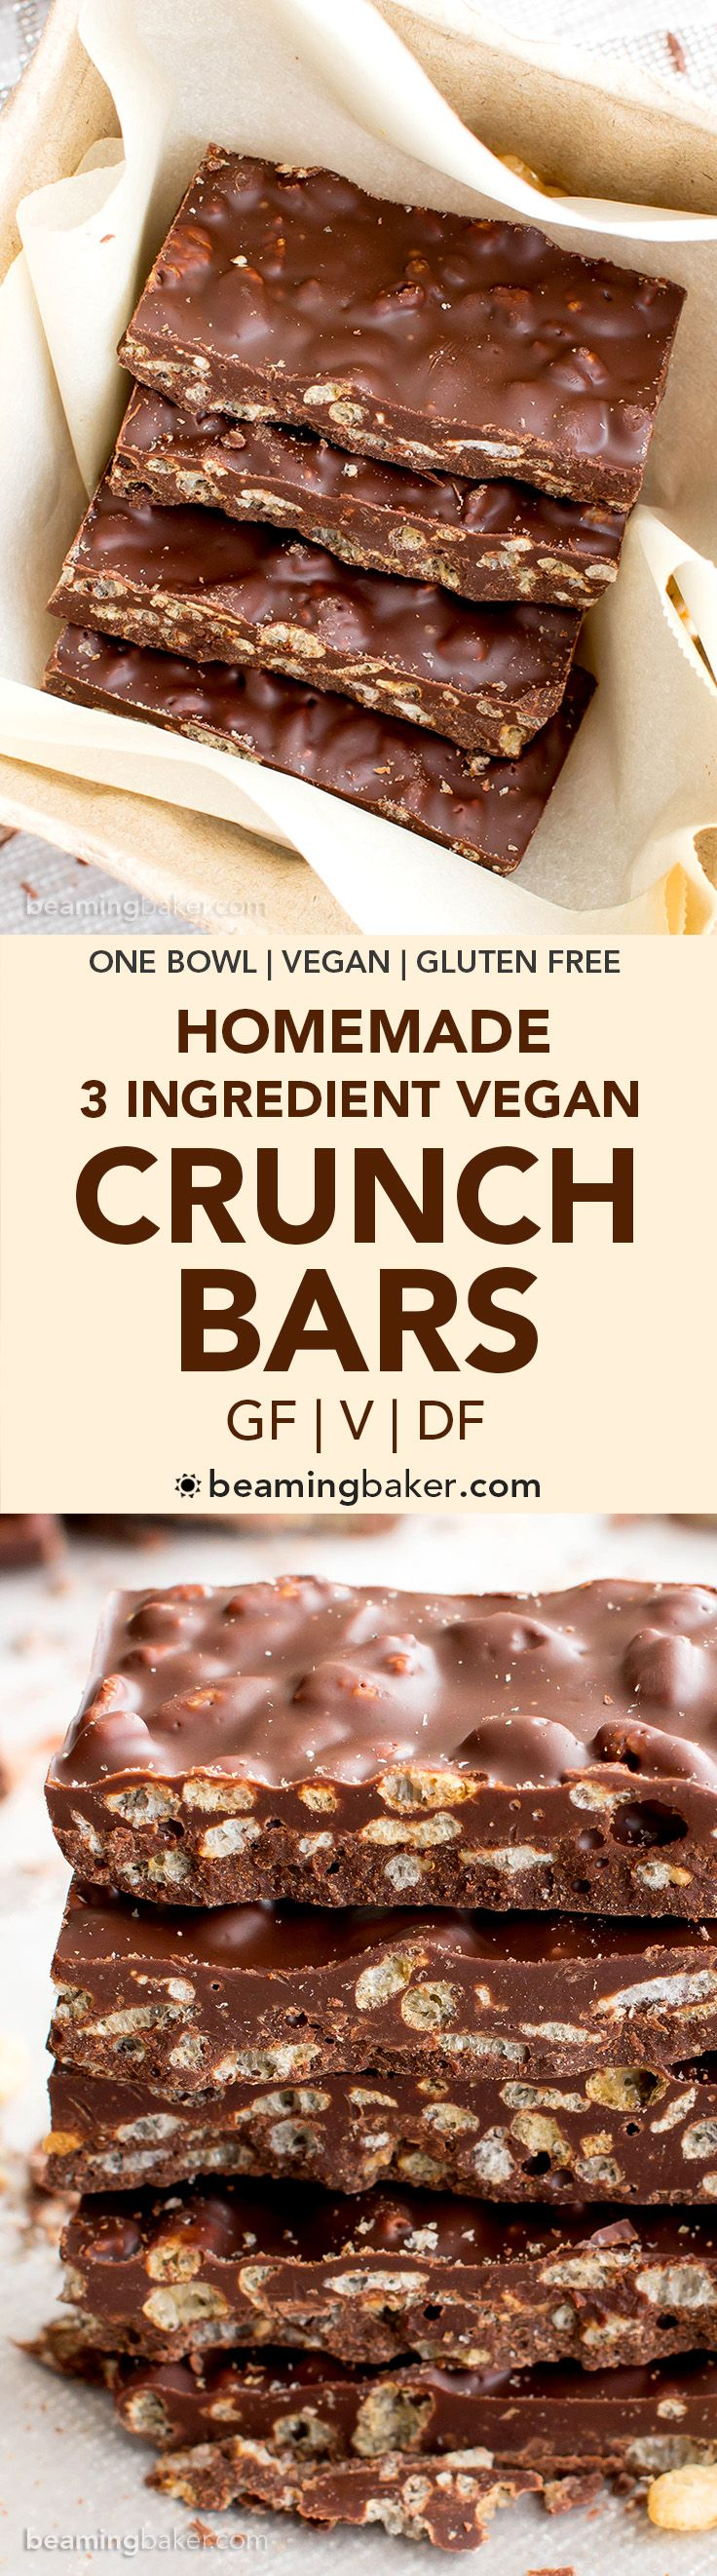 3 Ingredient Homemade Crunch Bars Gf V Df A Quick And